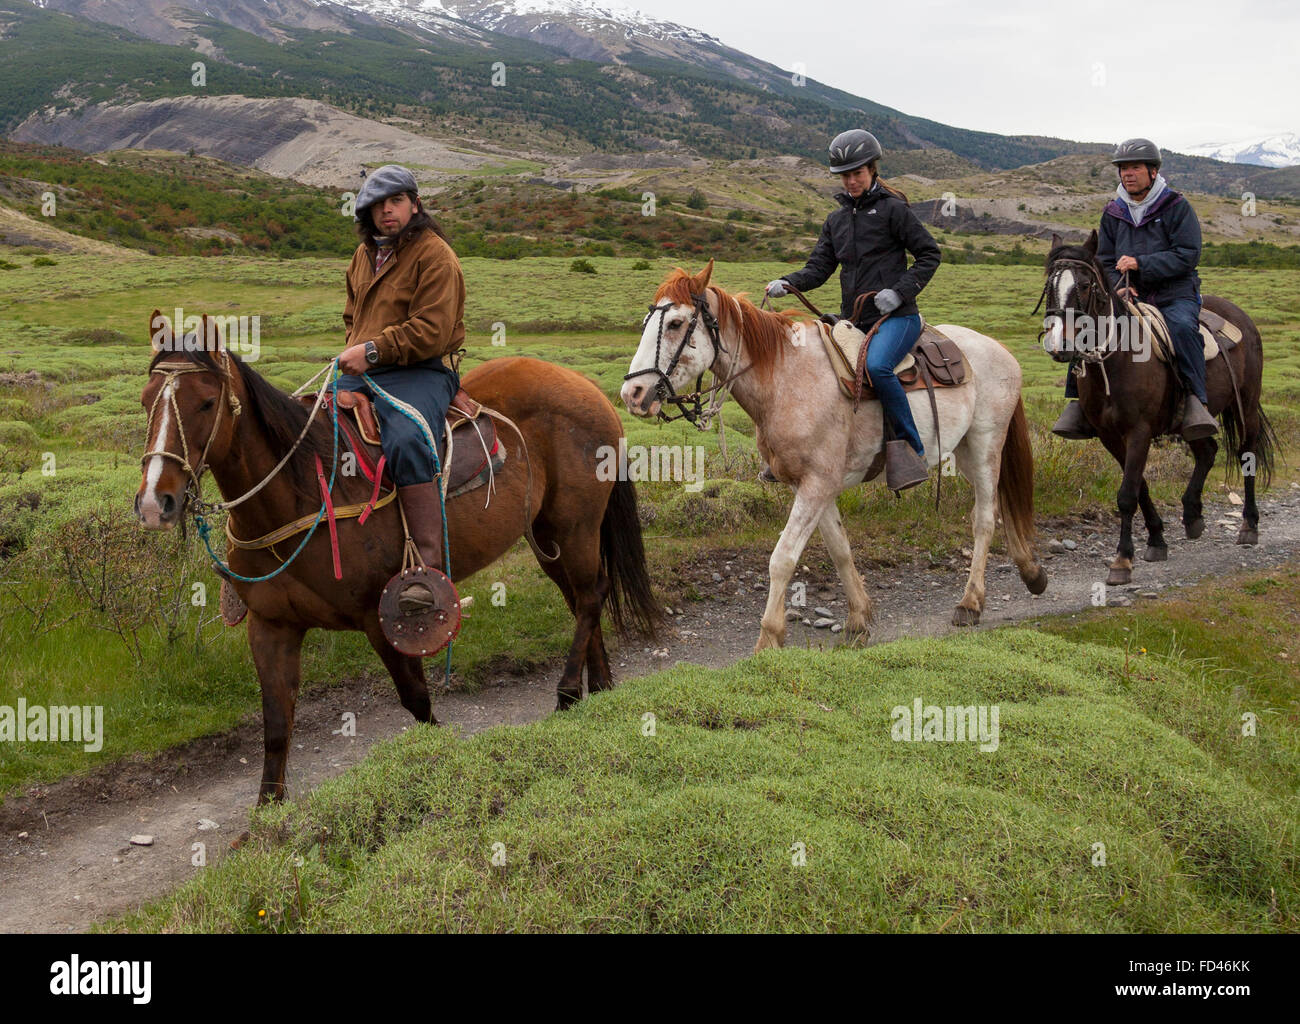 Three horse riders in Patagonia, Chile - Stock Image